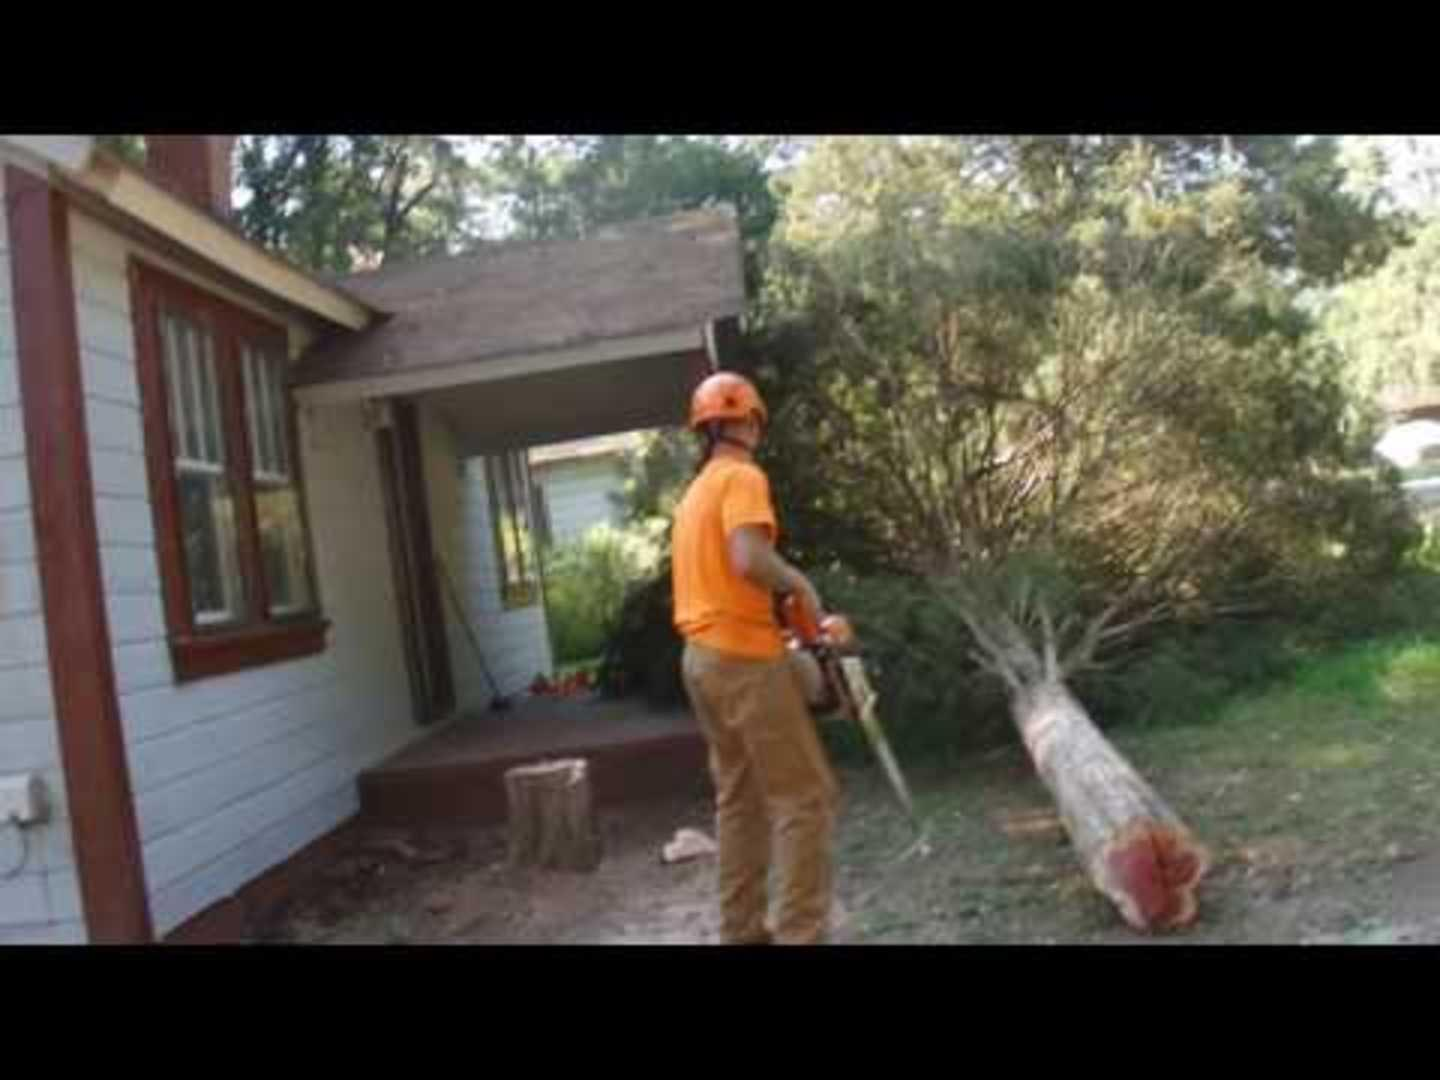 Tree Cutter Tree Cutter Breaks Fence Jukin Media Inc